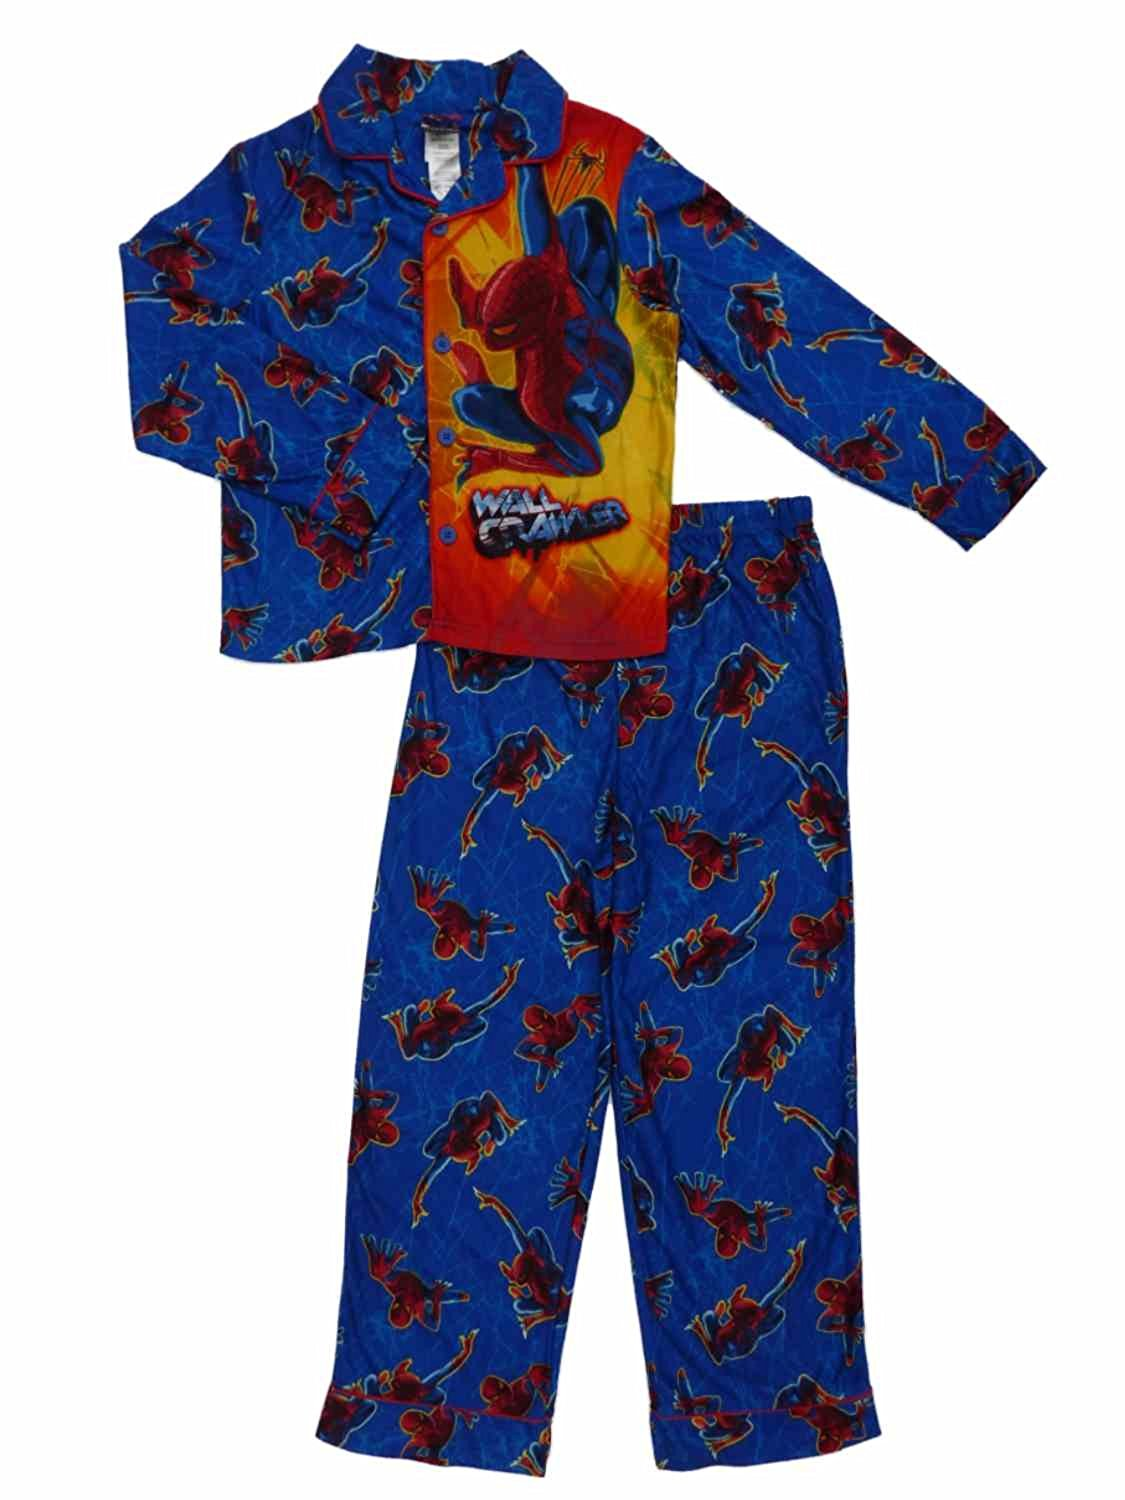 Marvel Boys The Amazing Spider-Man Flannel Sleepwear Pajama Set 8